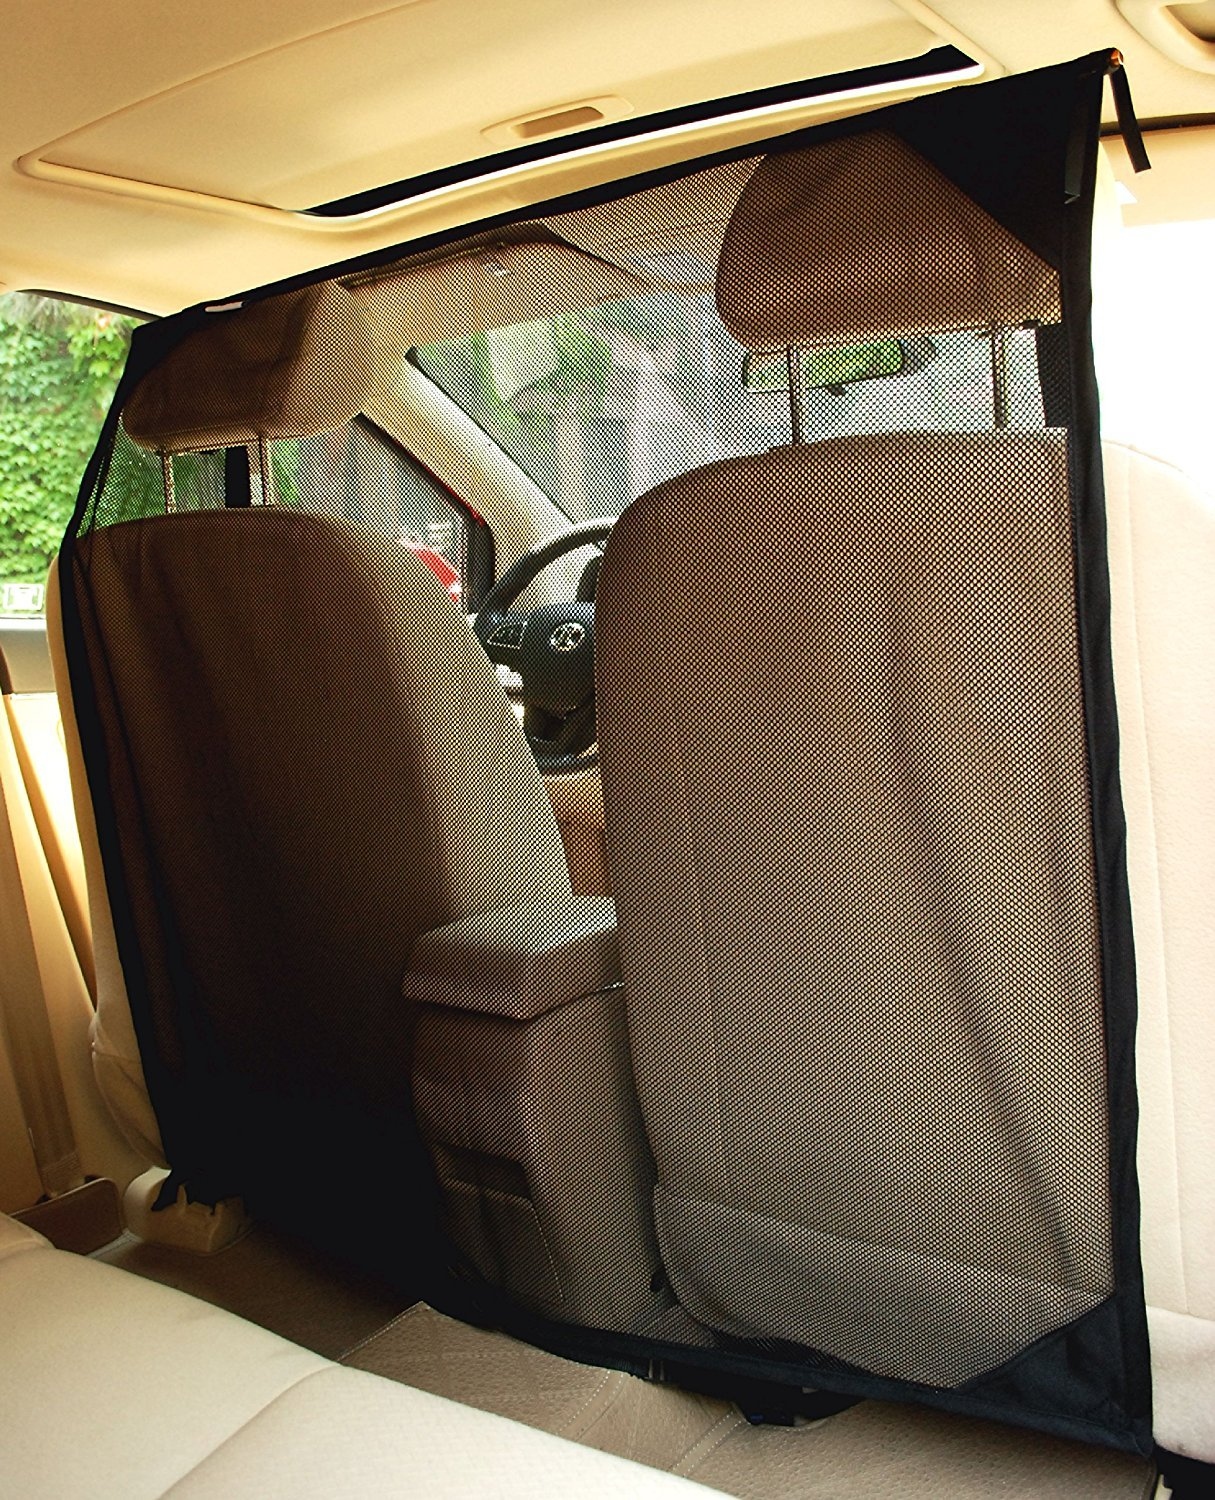 NAC&ZAC SUV Pet Barrier High See Through Net Vehicle Pet Barrier to Keep Dogs and Pet Hair Out of Front Seat